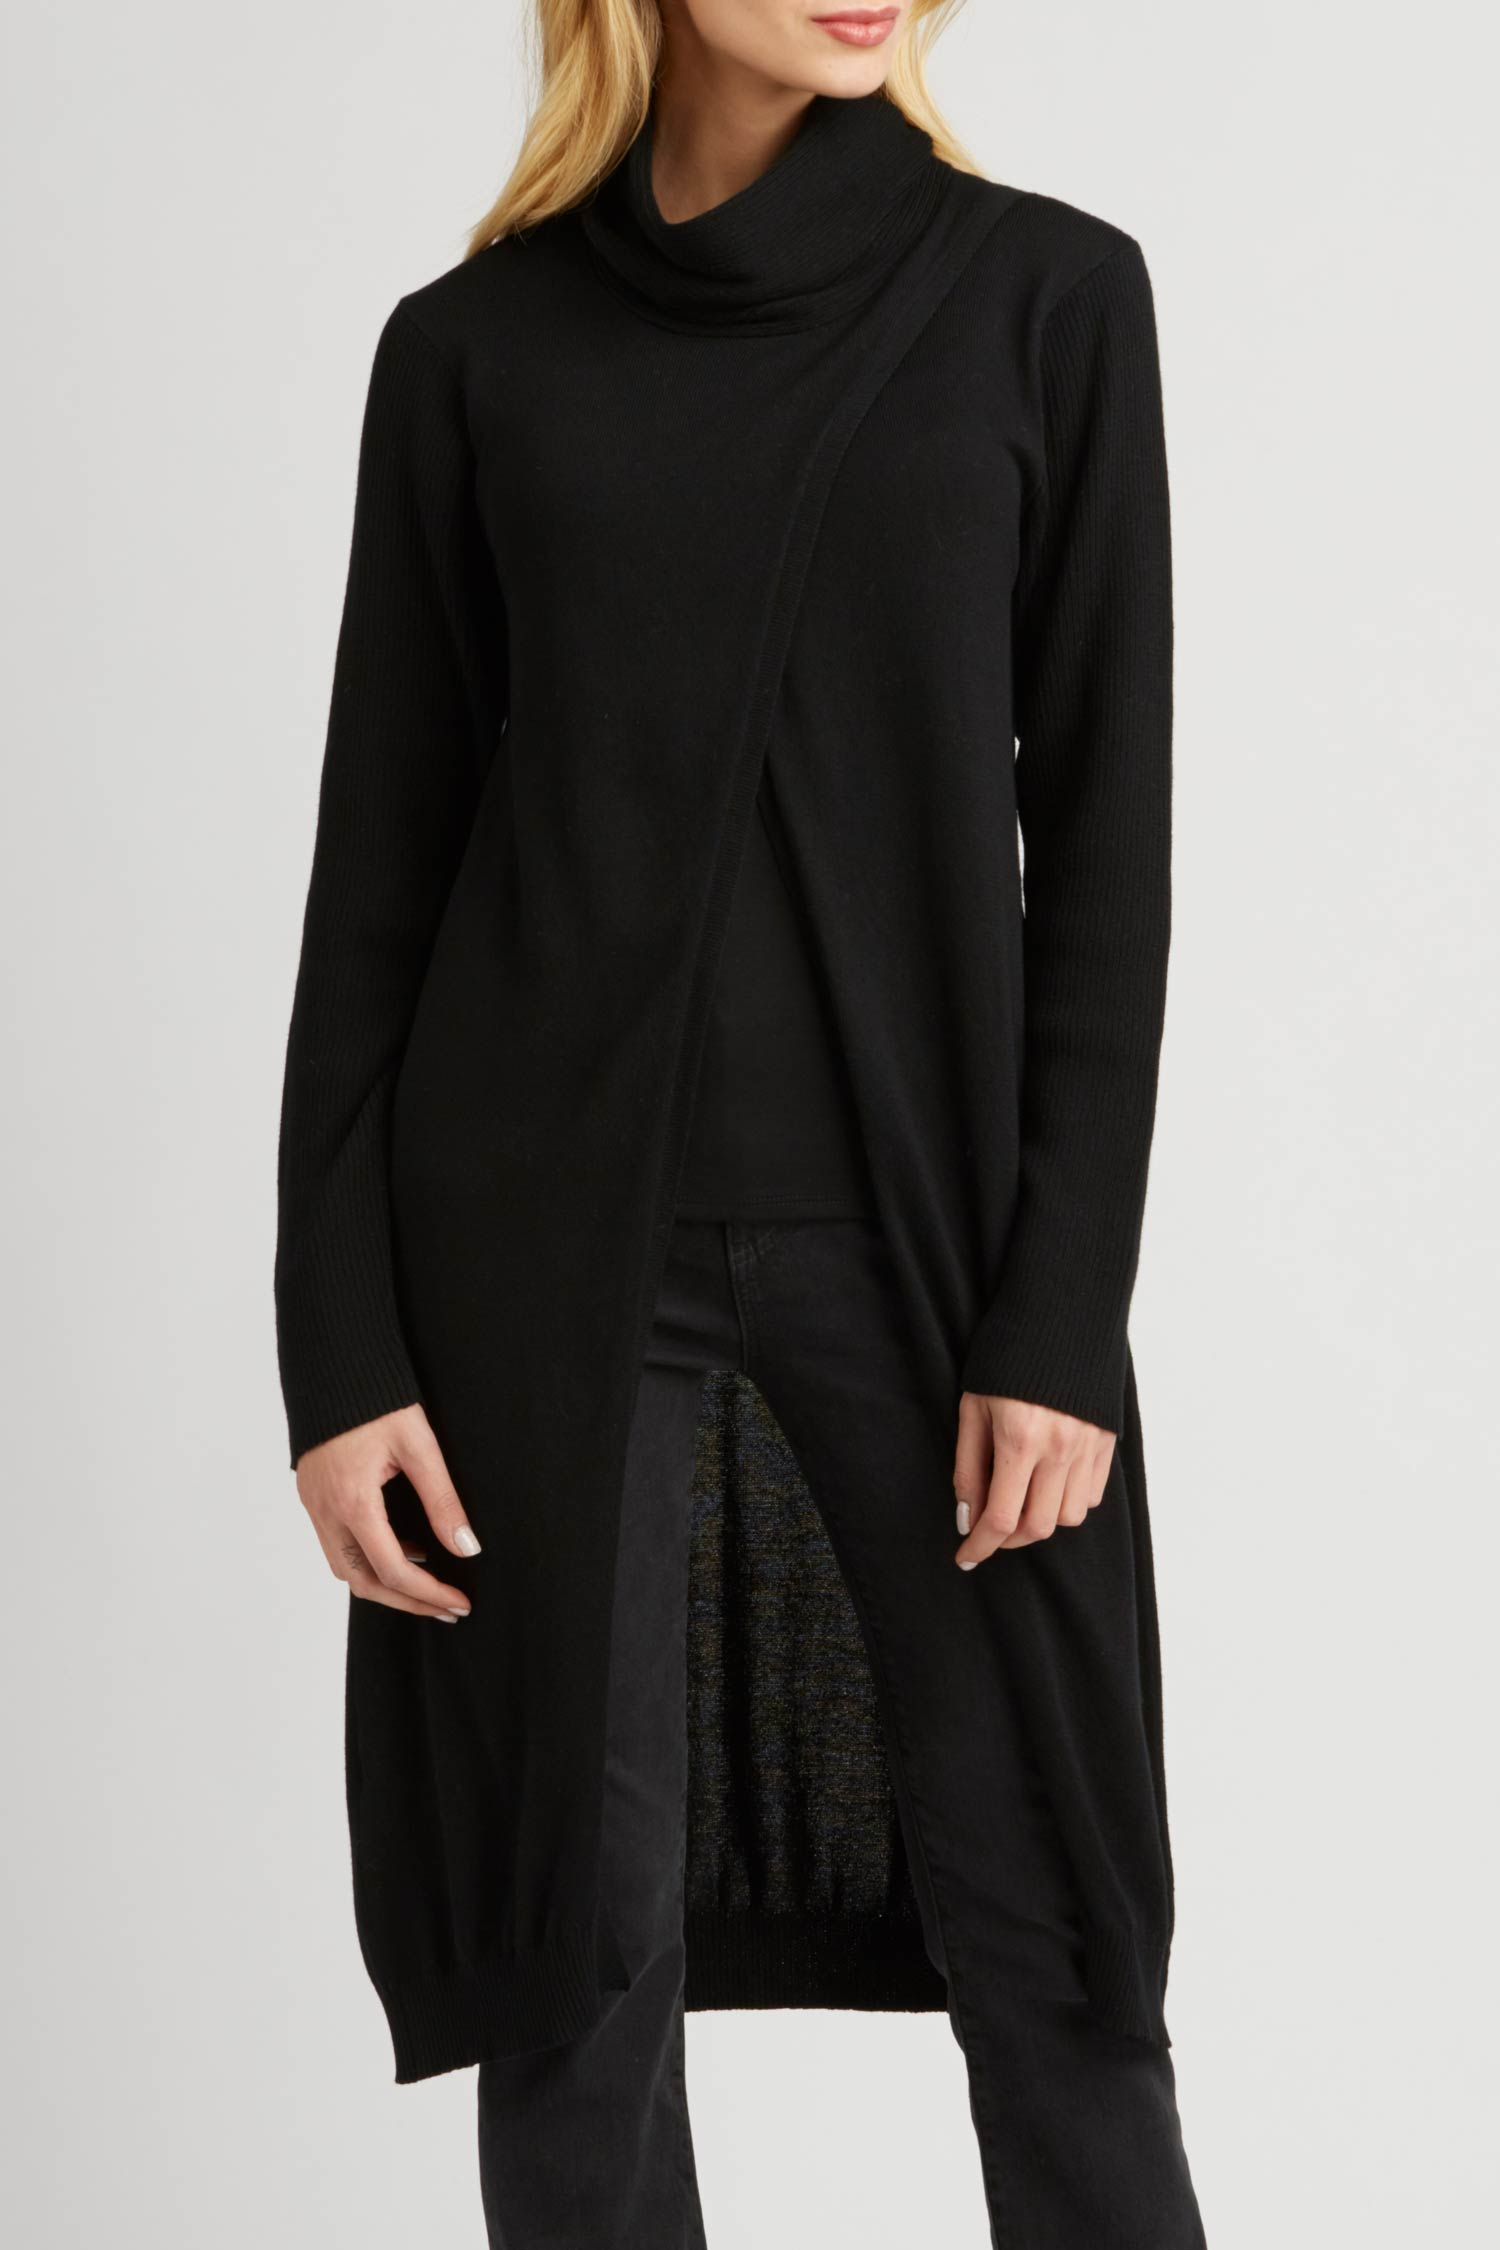 Womens Cross Front Cowl Tunic Cardigan | Black | Organic Cotton Clothing